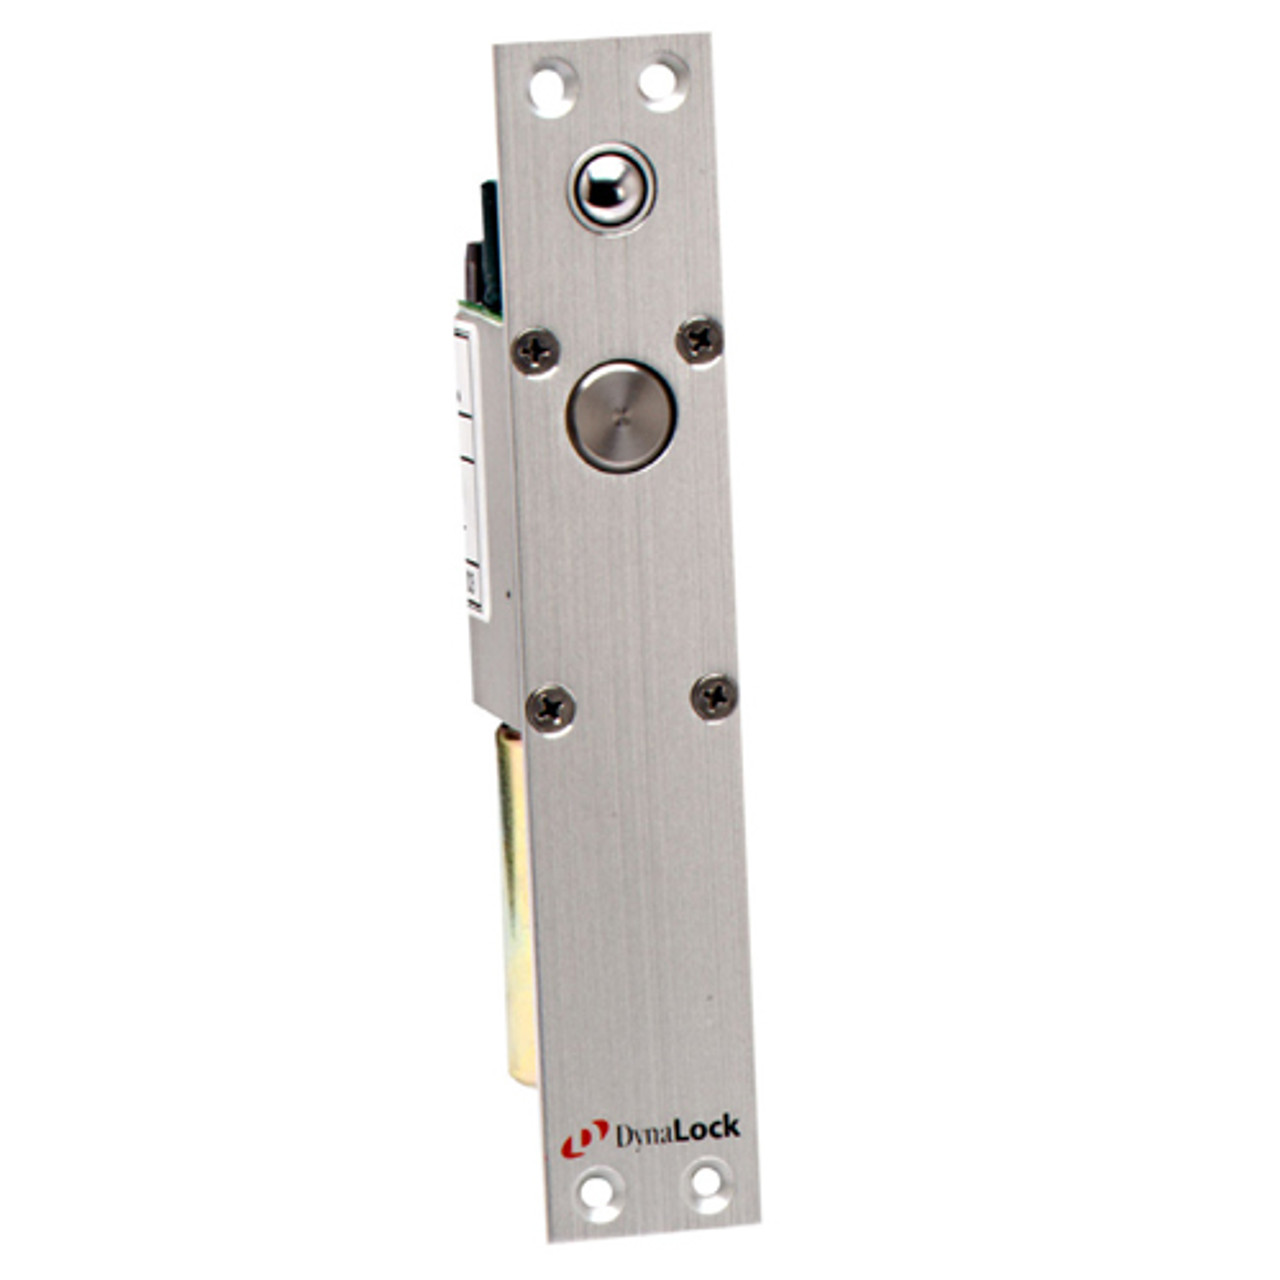 1300-12/24-BPS DynaLock 1300 Series Mortise Electric Deadbolt with Bolt Position Switch